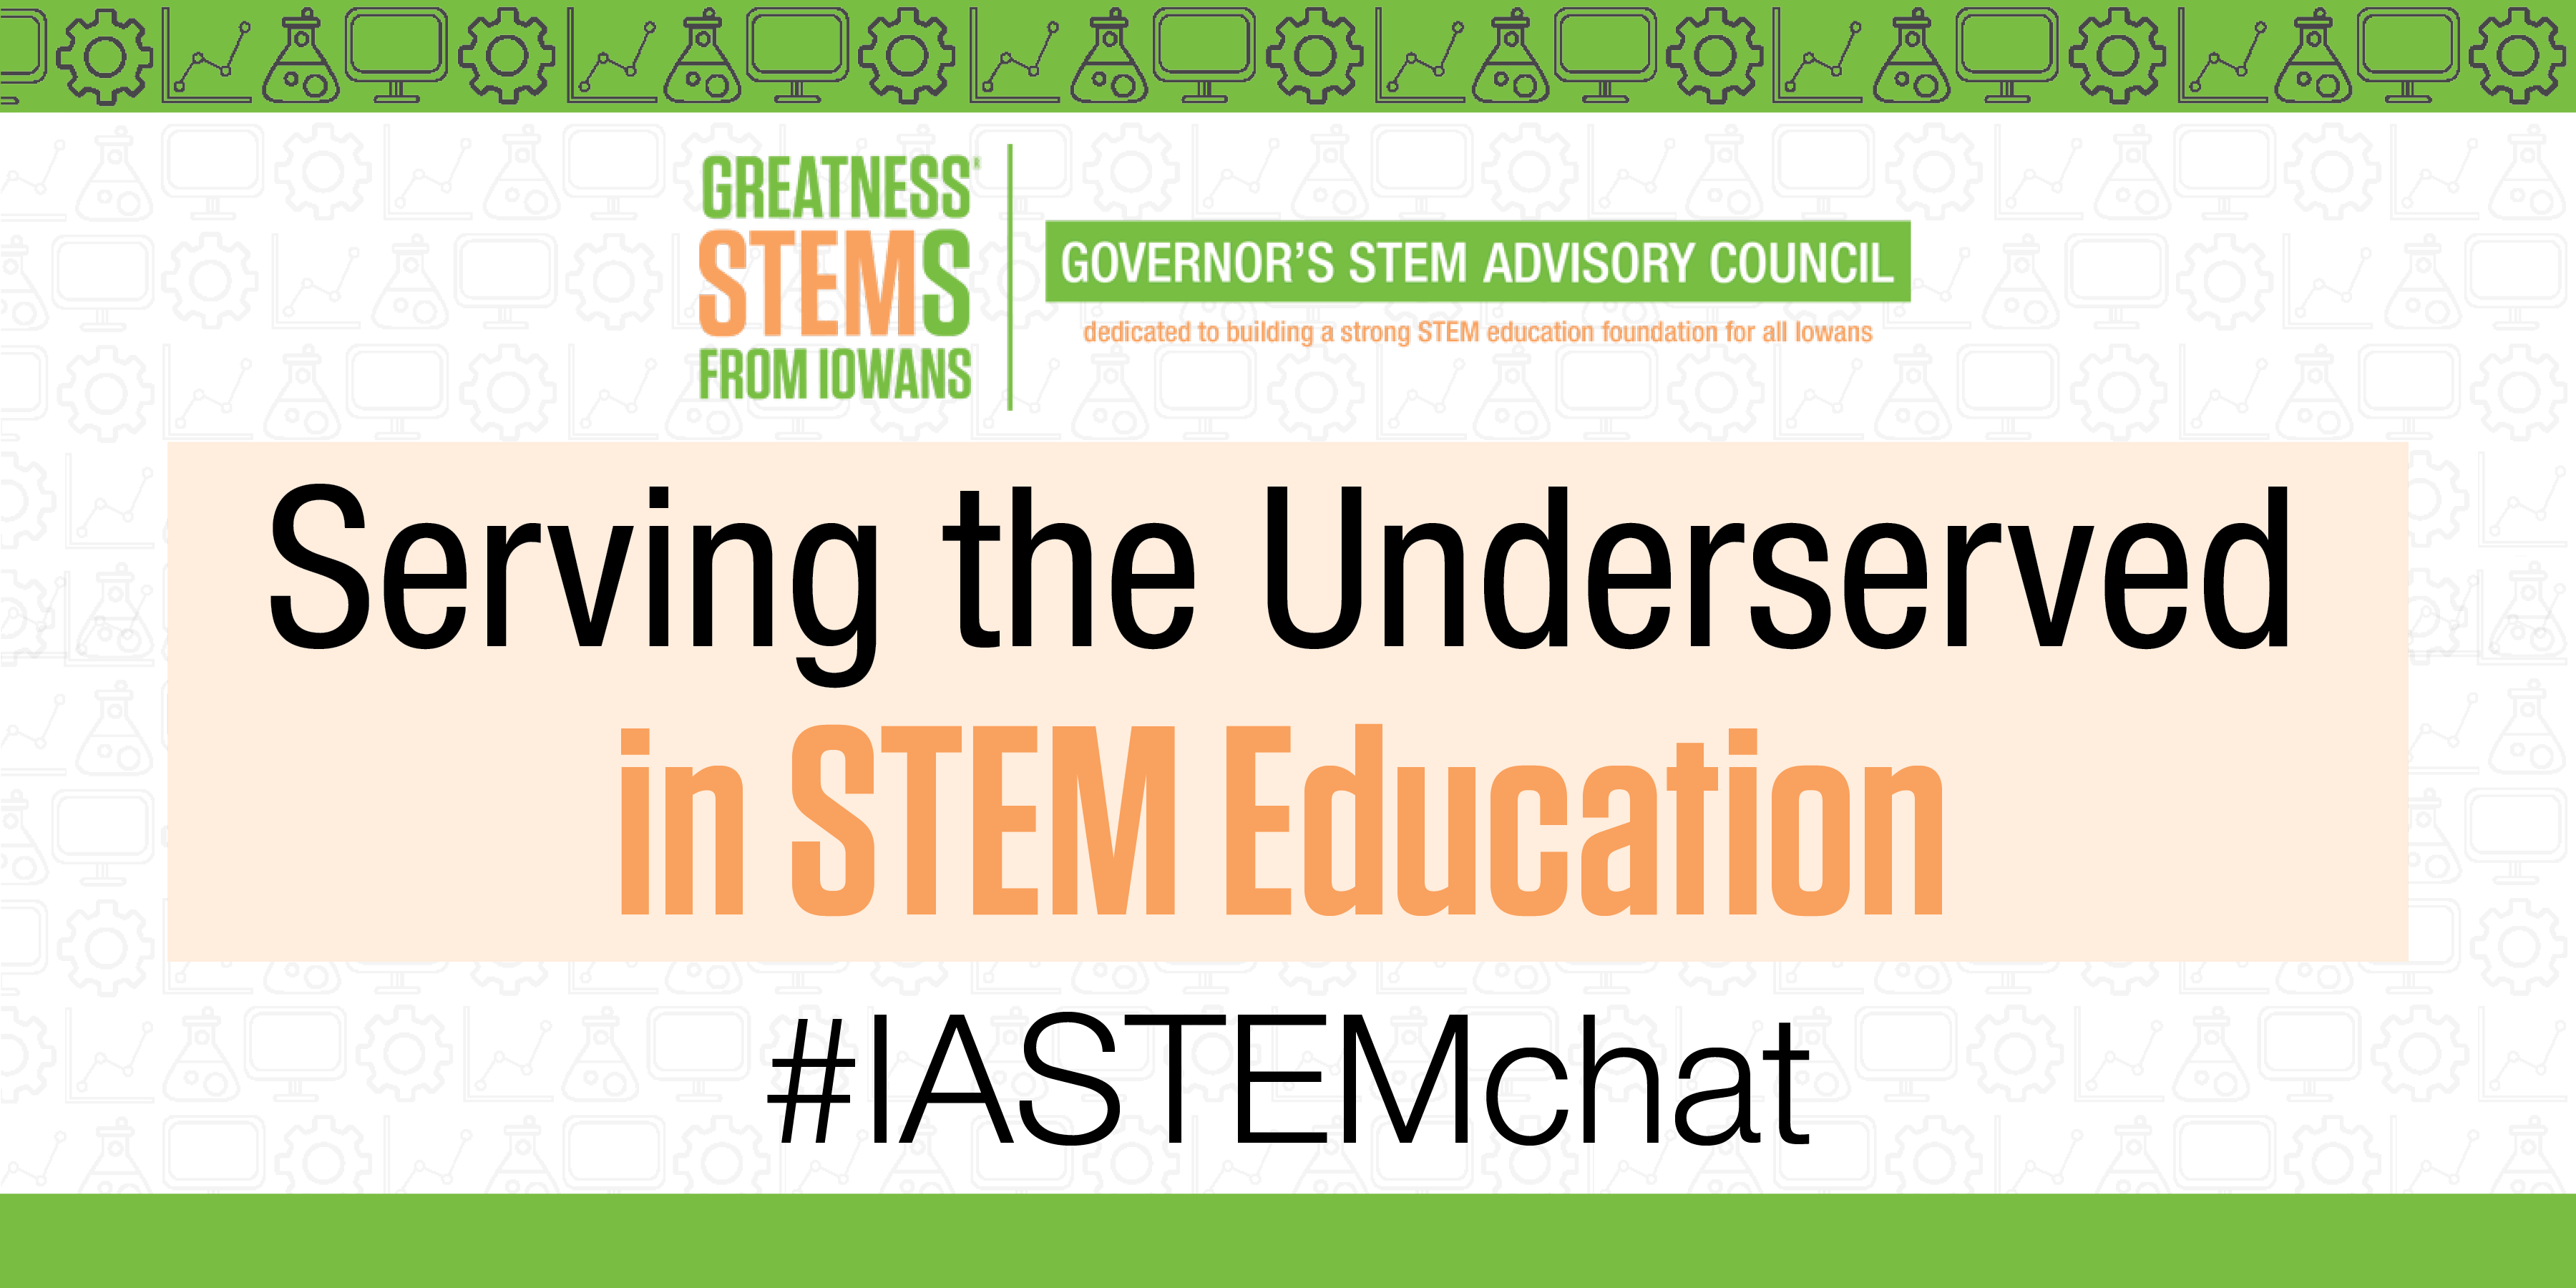 Twitter Chat a Powerful Tool Toward STEM Equity